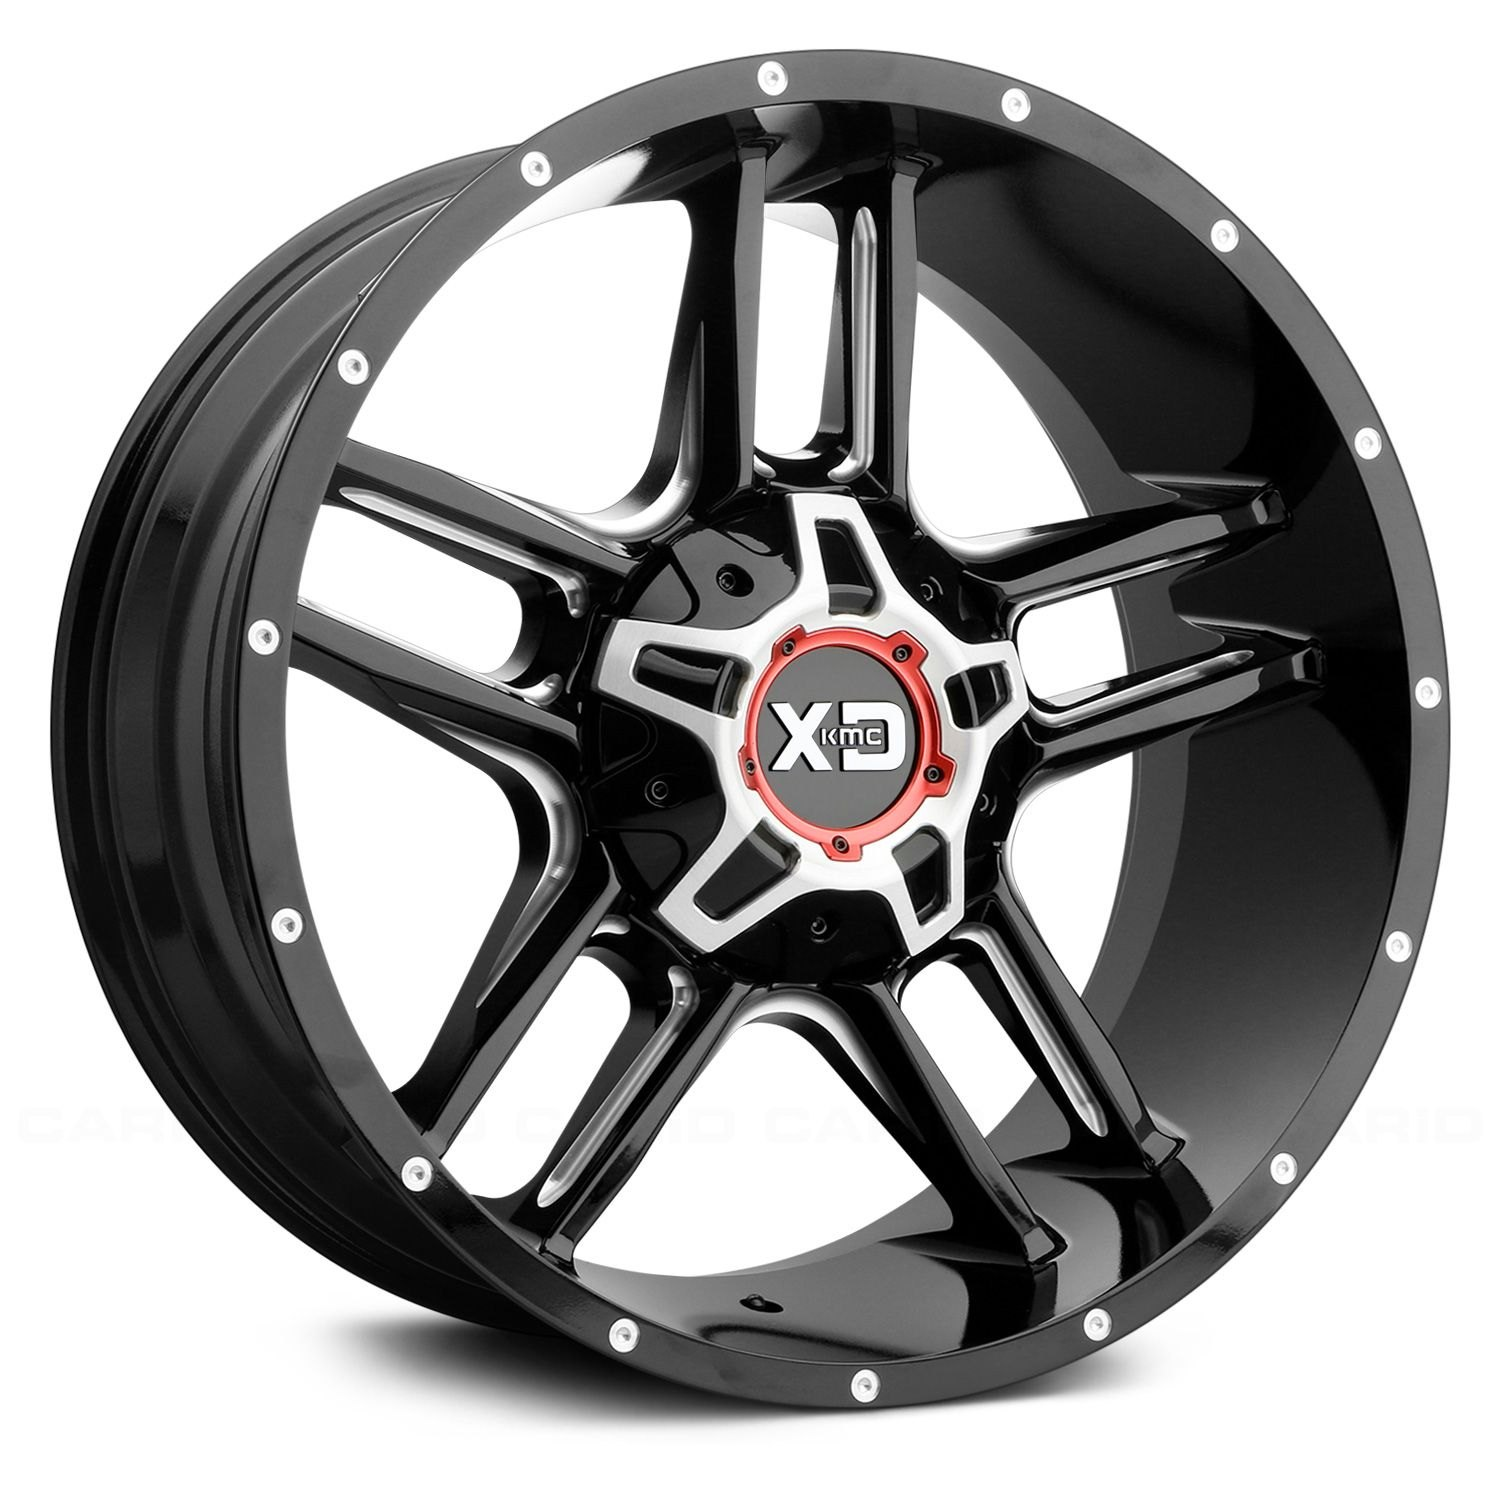 Clamp Tractor Rims Rims : Xd series clamp wheels gloss black with milled